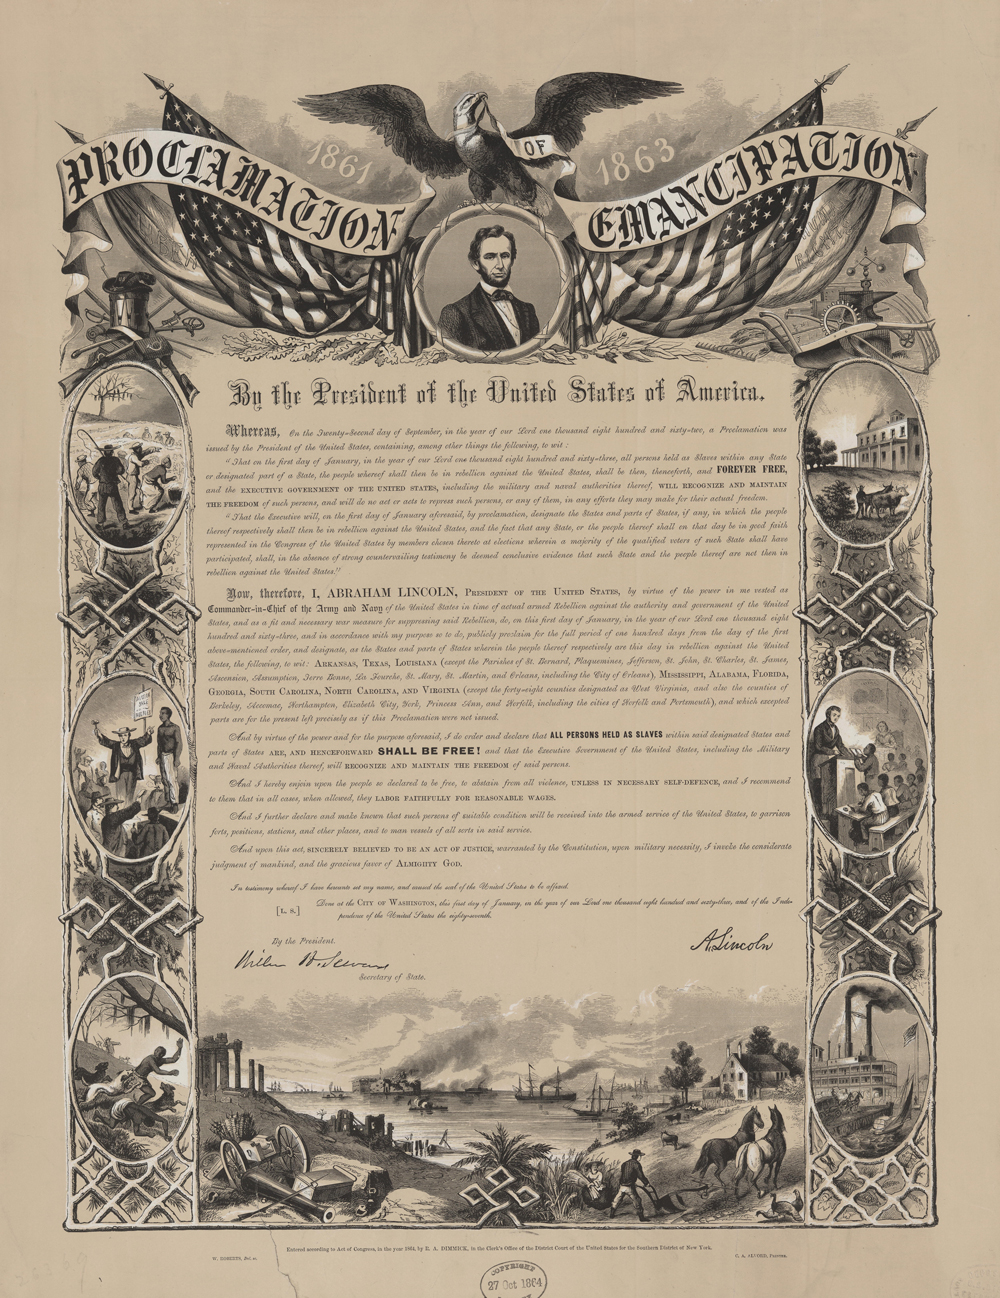 medium resolution of Print of Emancipation Proclamation by President Abraham Lincoln